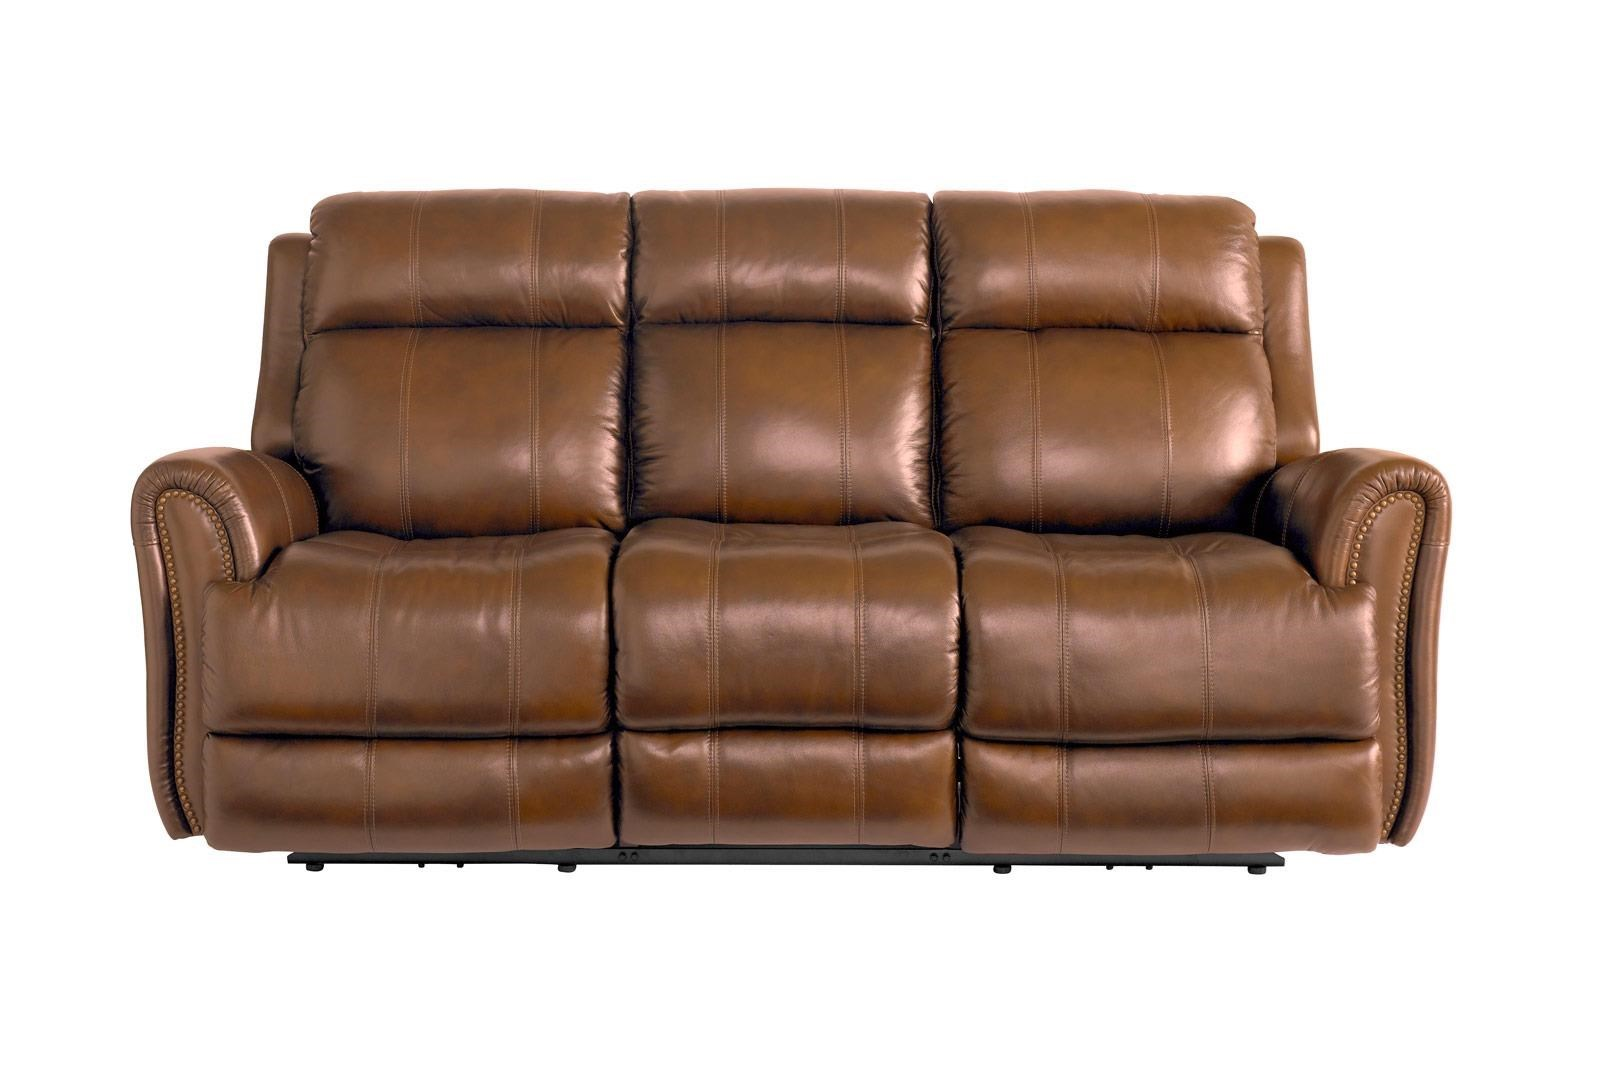 Bassett MarqueeLeather Pwr Reclining Sofa W/Pwr Headrest ...